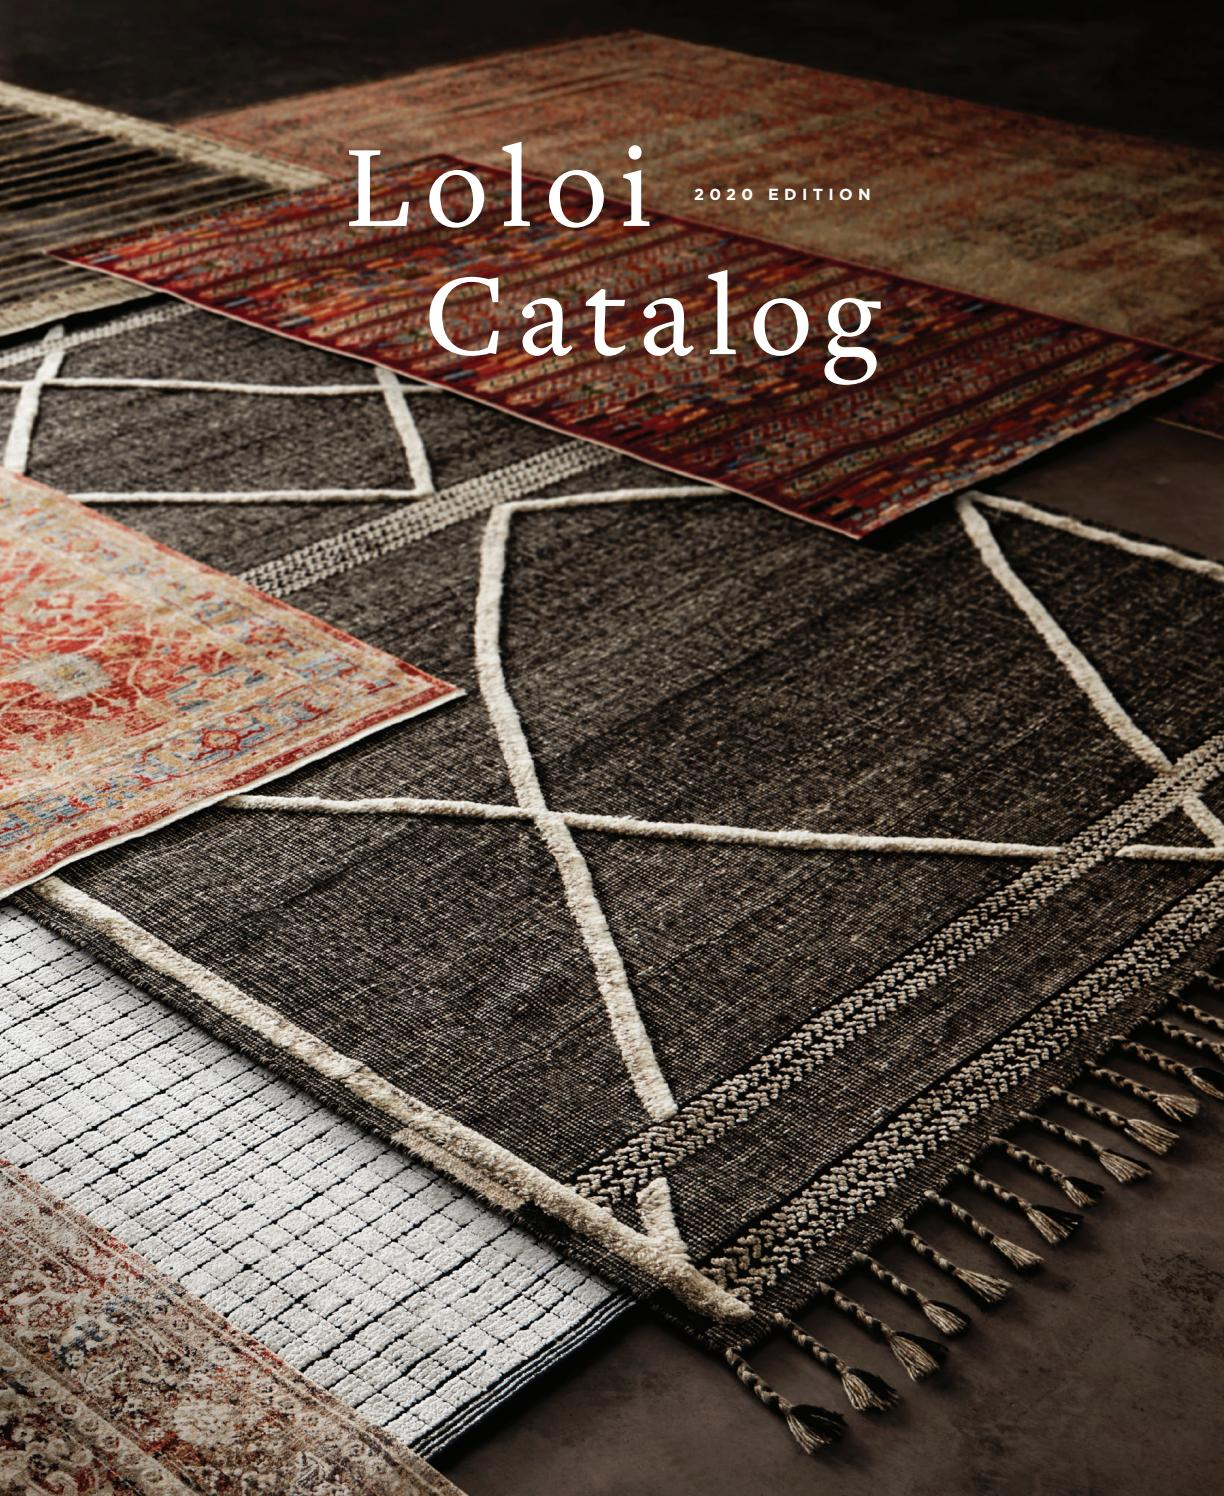 Loloi Catalog 2020 By Loloi Issuu